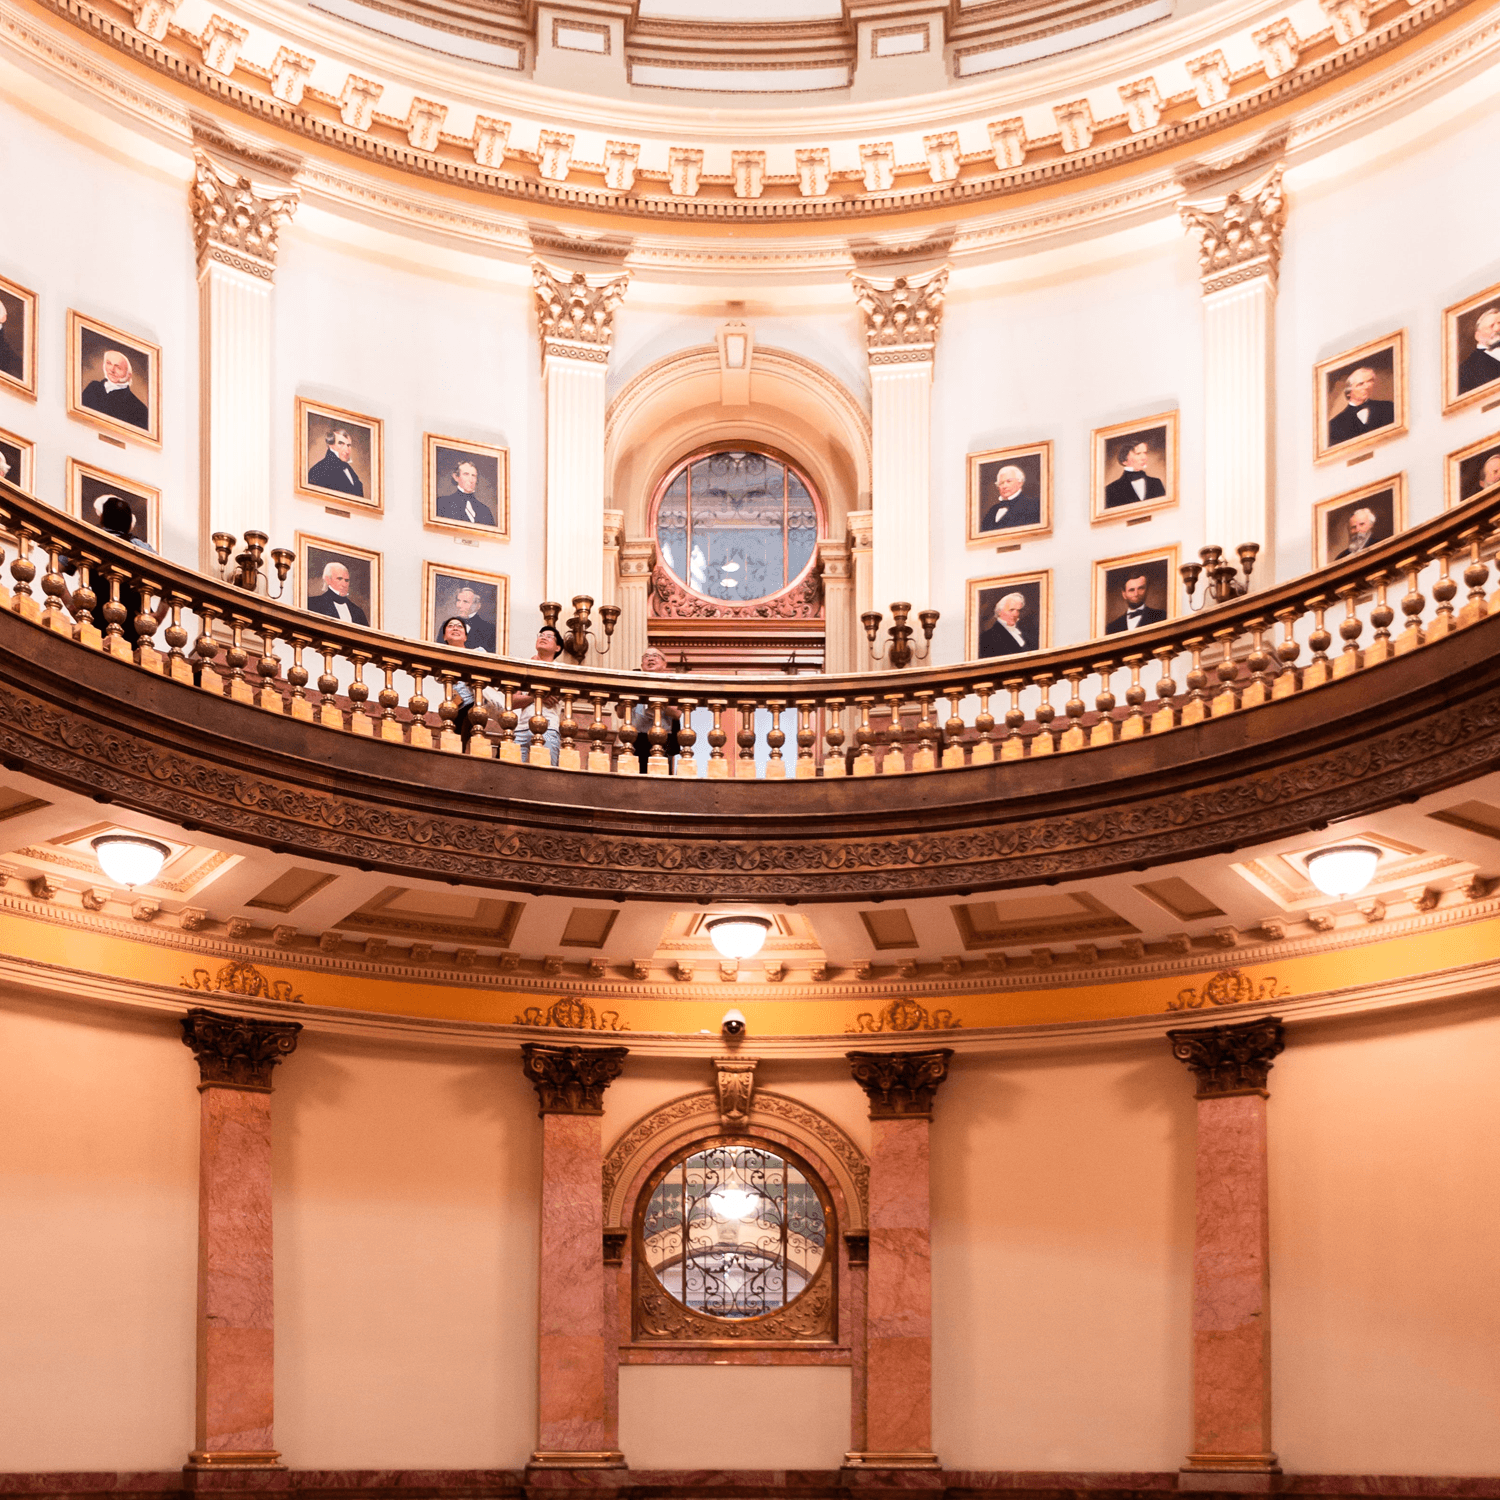 CO State capital rotunda Photo by Eric Muhr on Unsplash